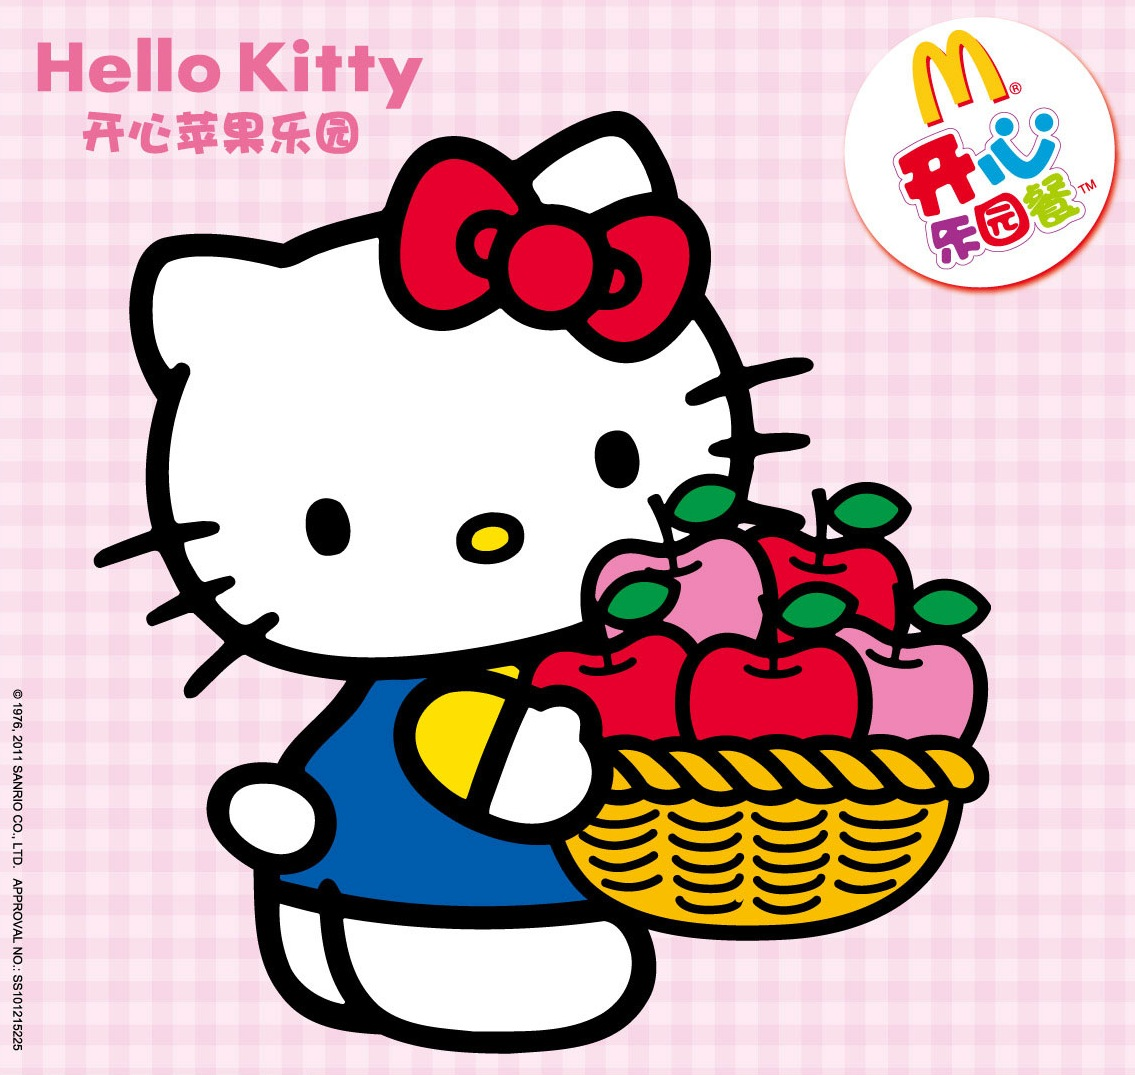 The Hello Kitty I ♥ ハローキティ: About Hello